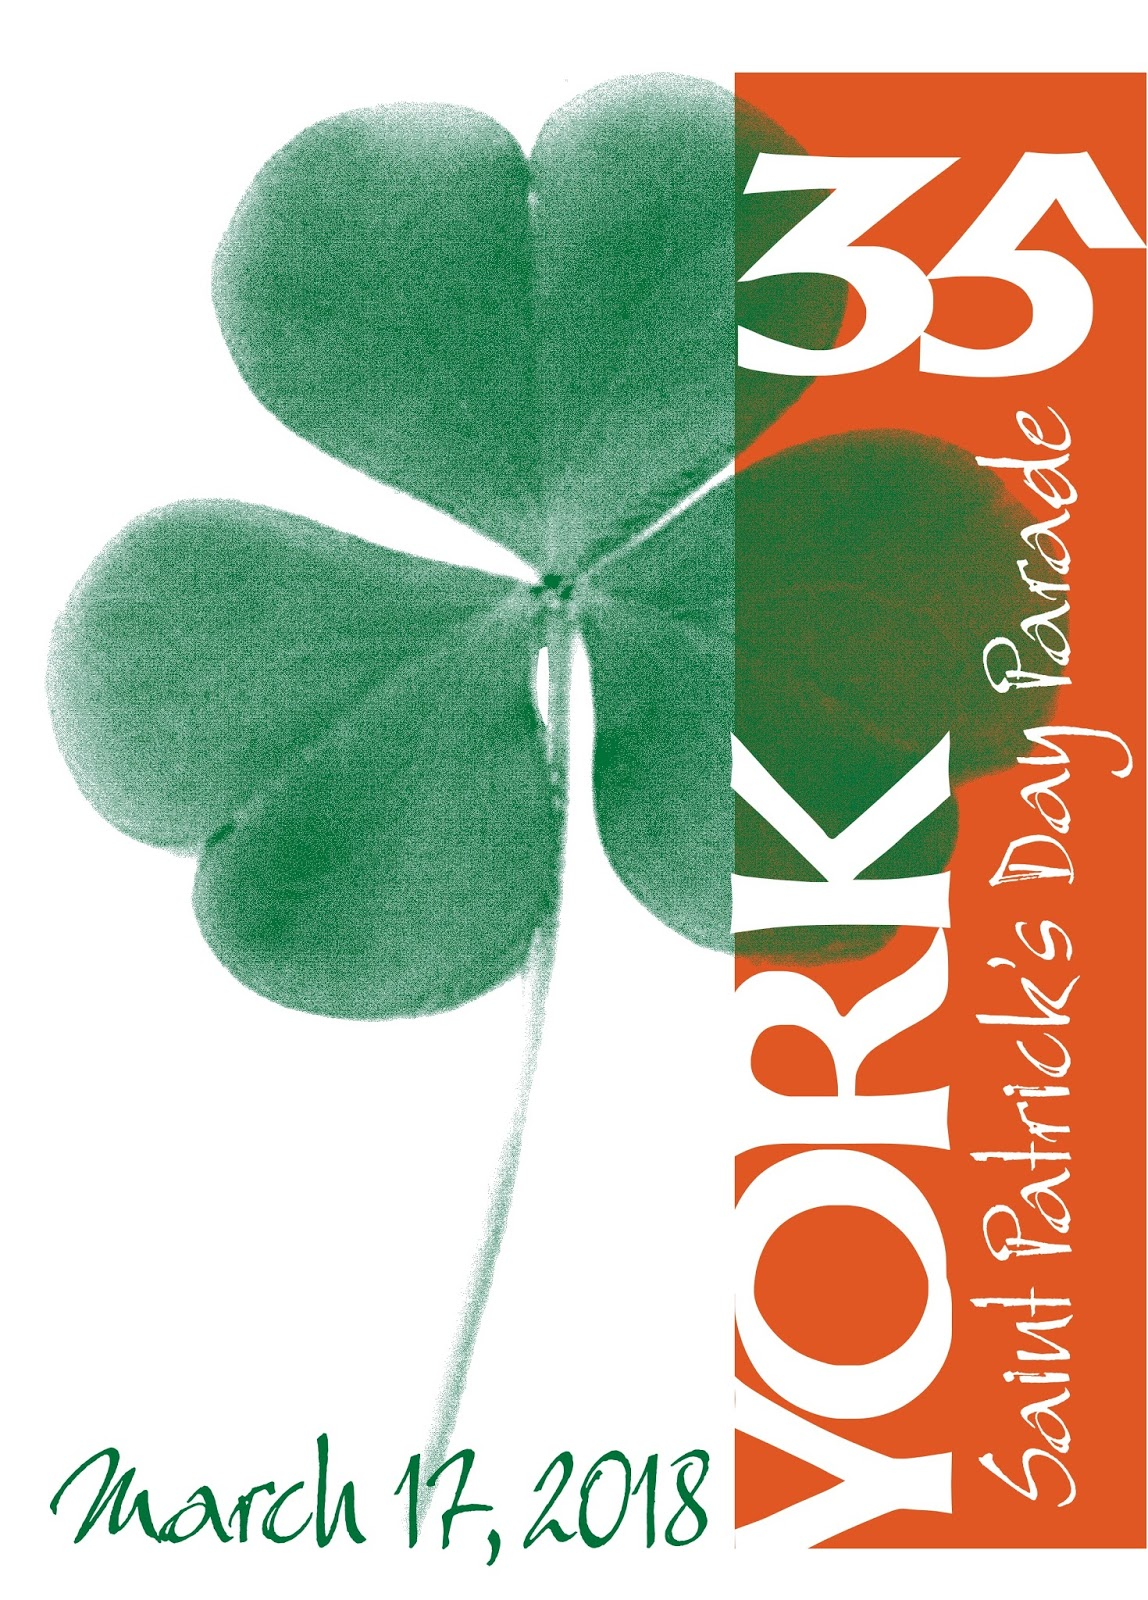 York saint patricks day parade shirts are 13 if ordered by february 10 shirts not ordered in advance will be 15 biocorpaavc